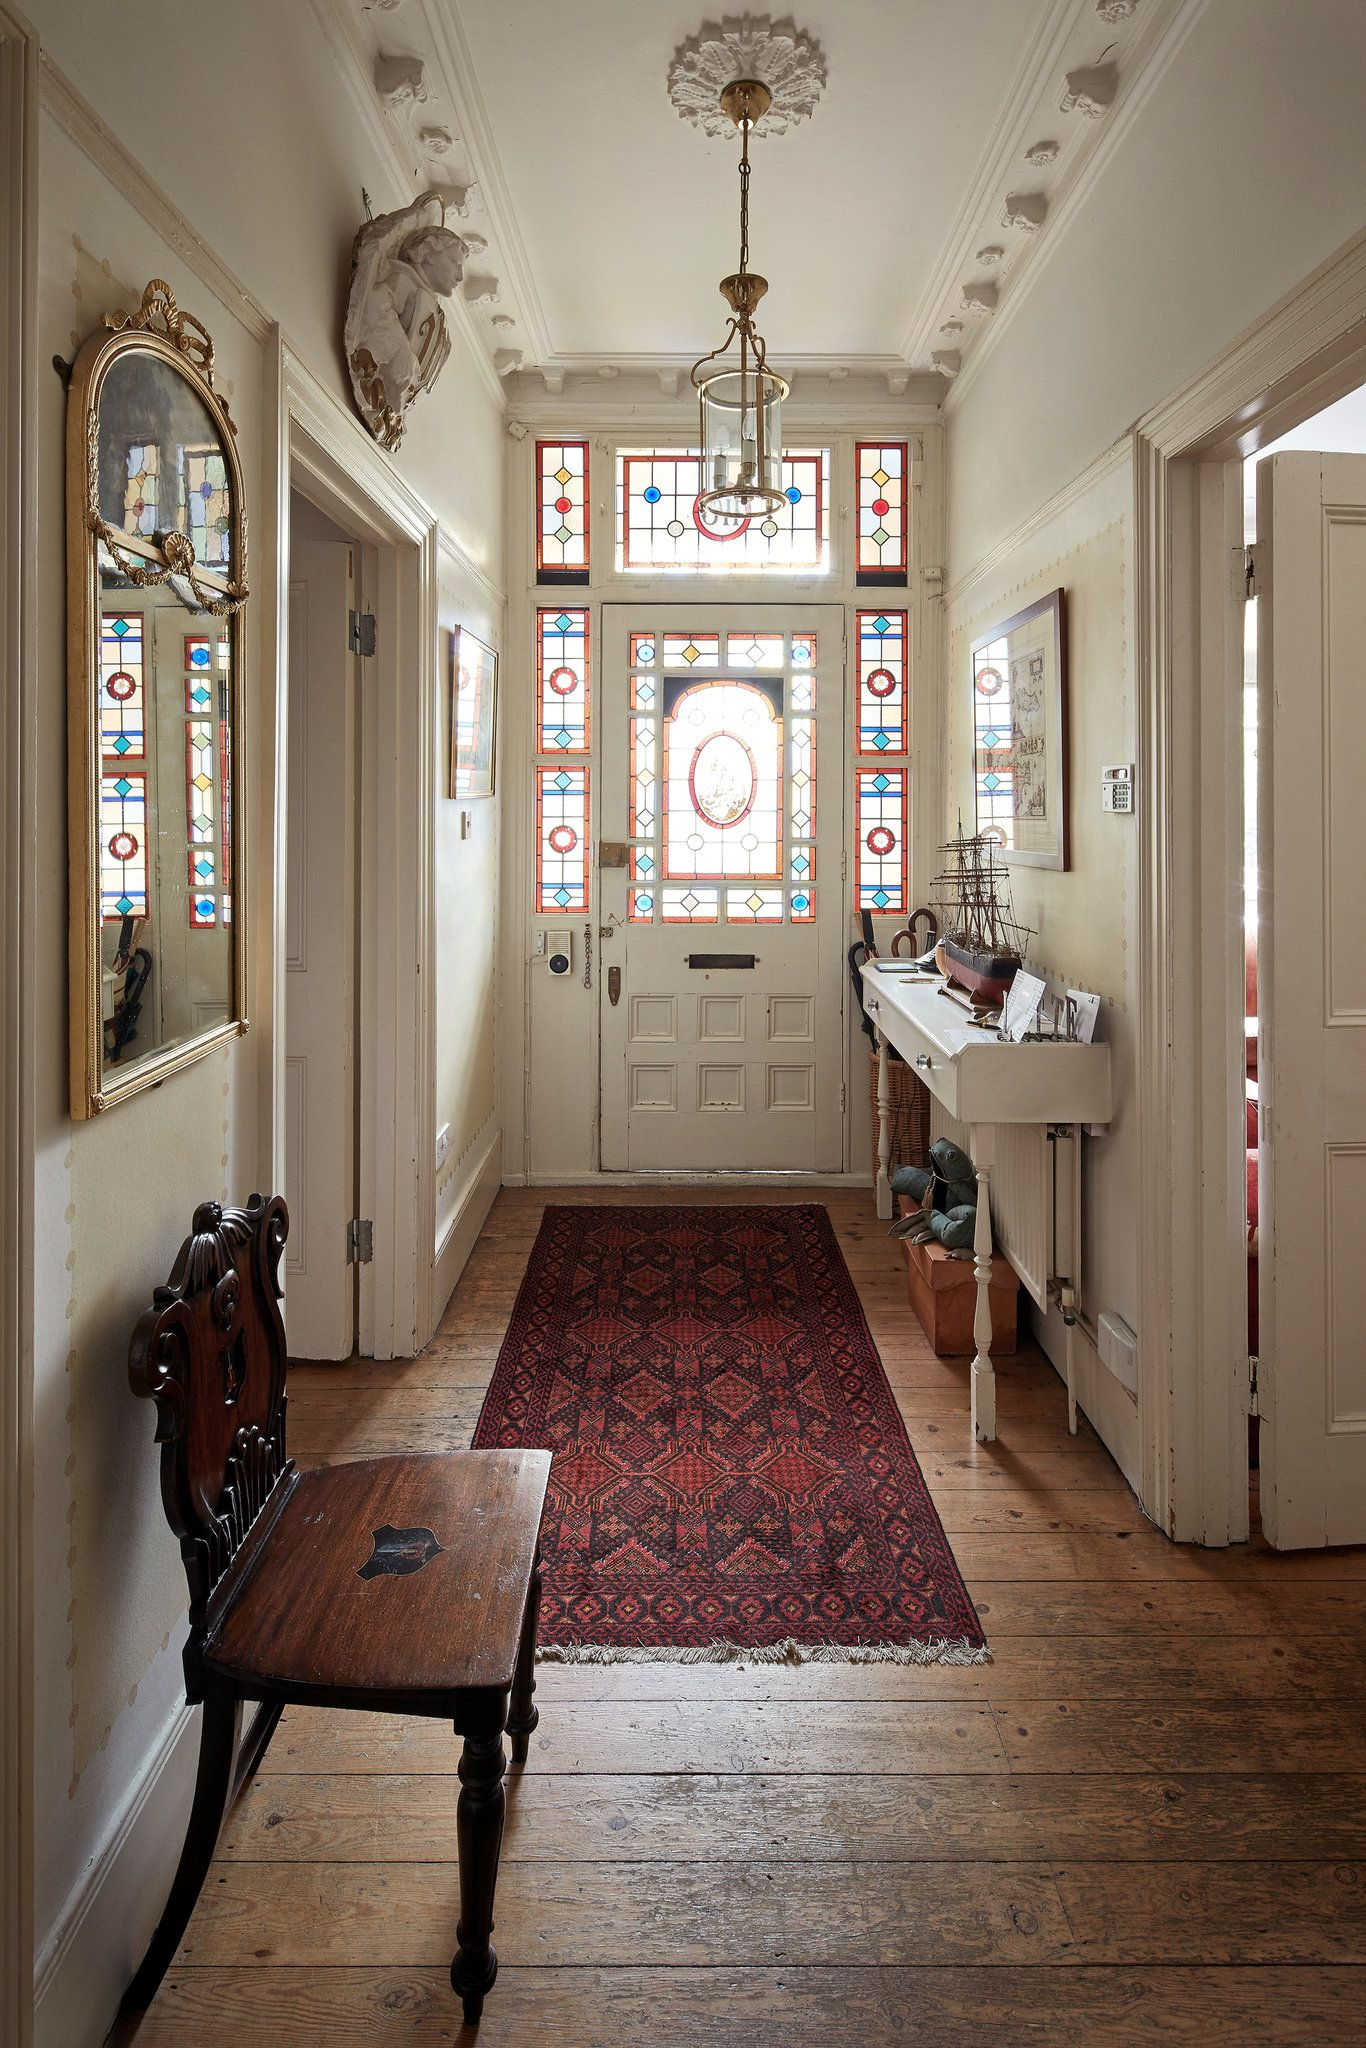 The entry in  victorian townhouse southwest london features decorative original stained glass windows along with ornate cornicing  unusual homes also rh pinterest